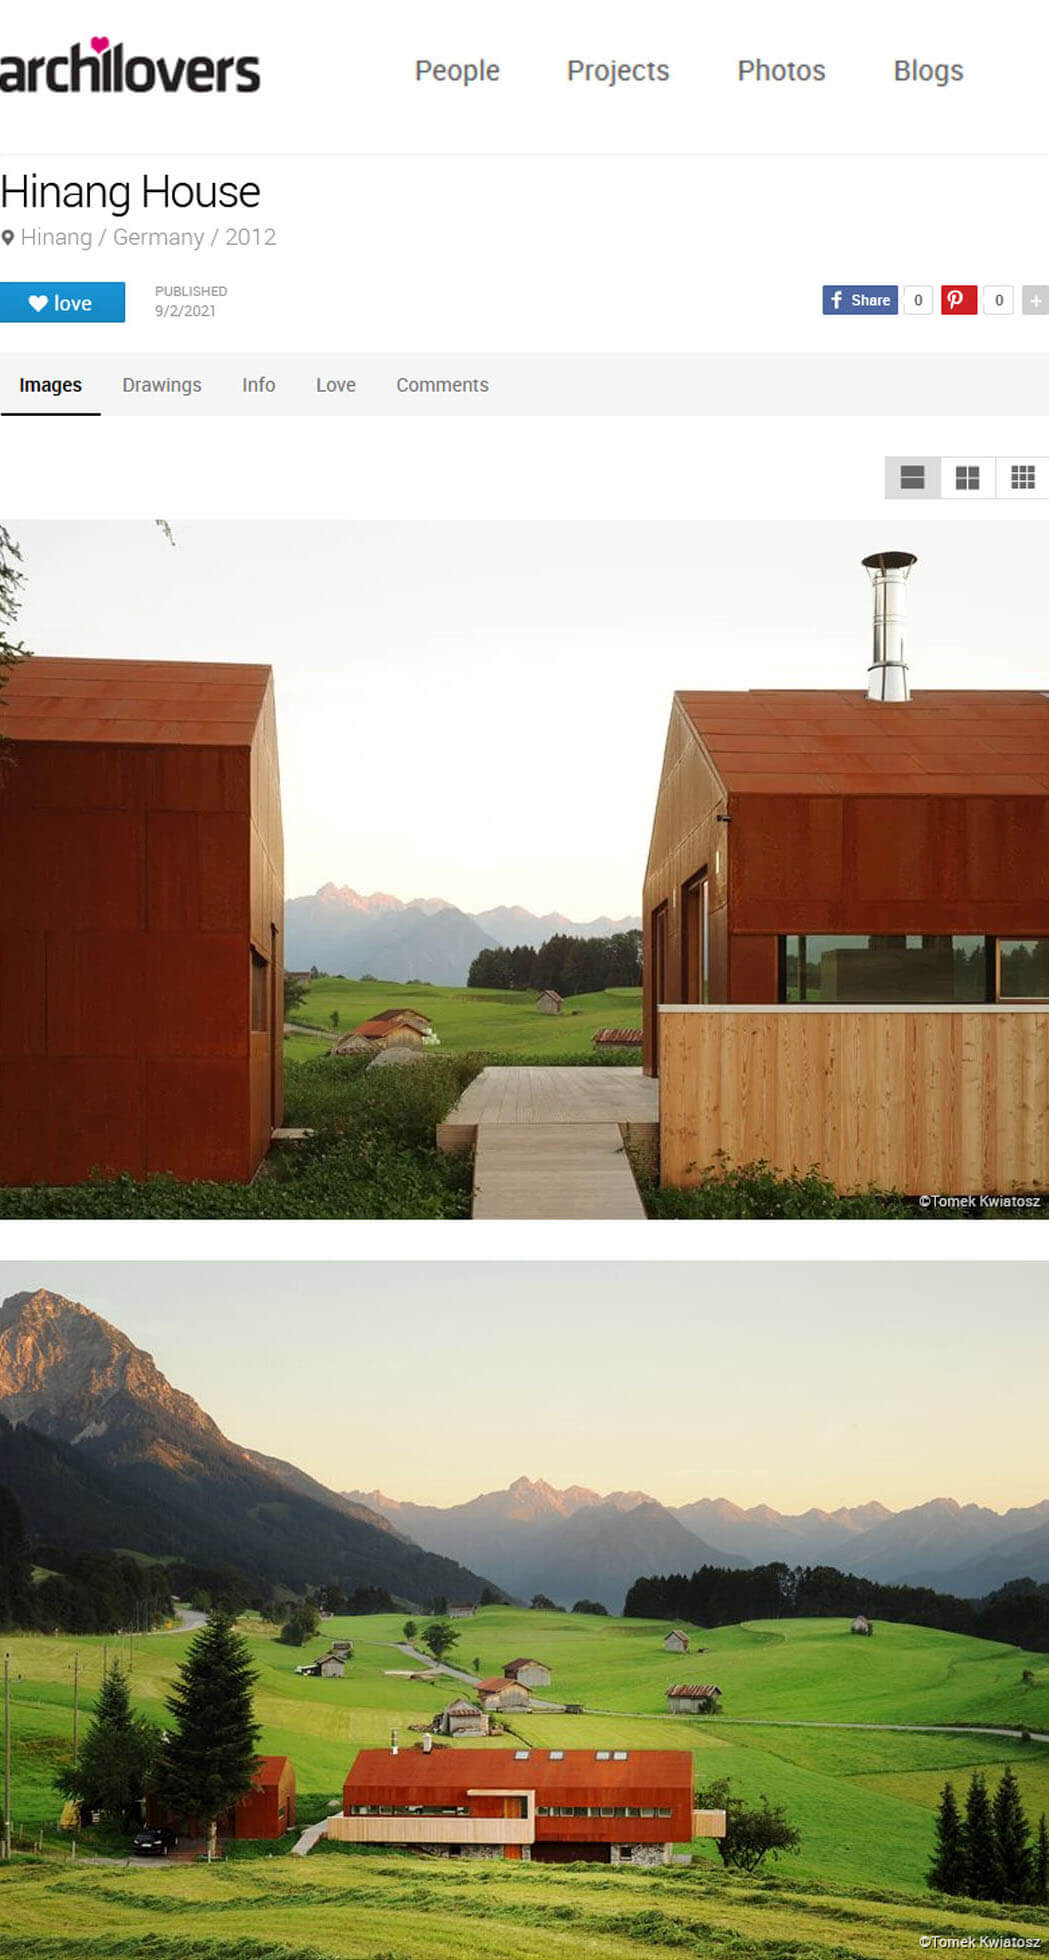 Hinang House in Archilovers